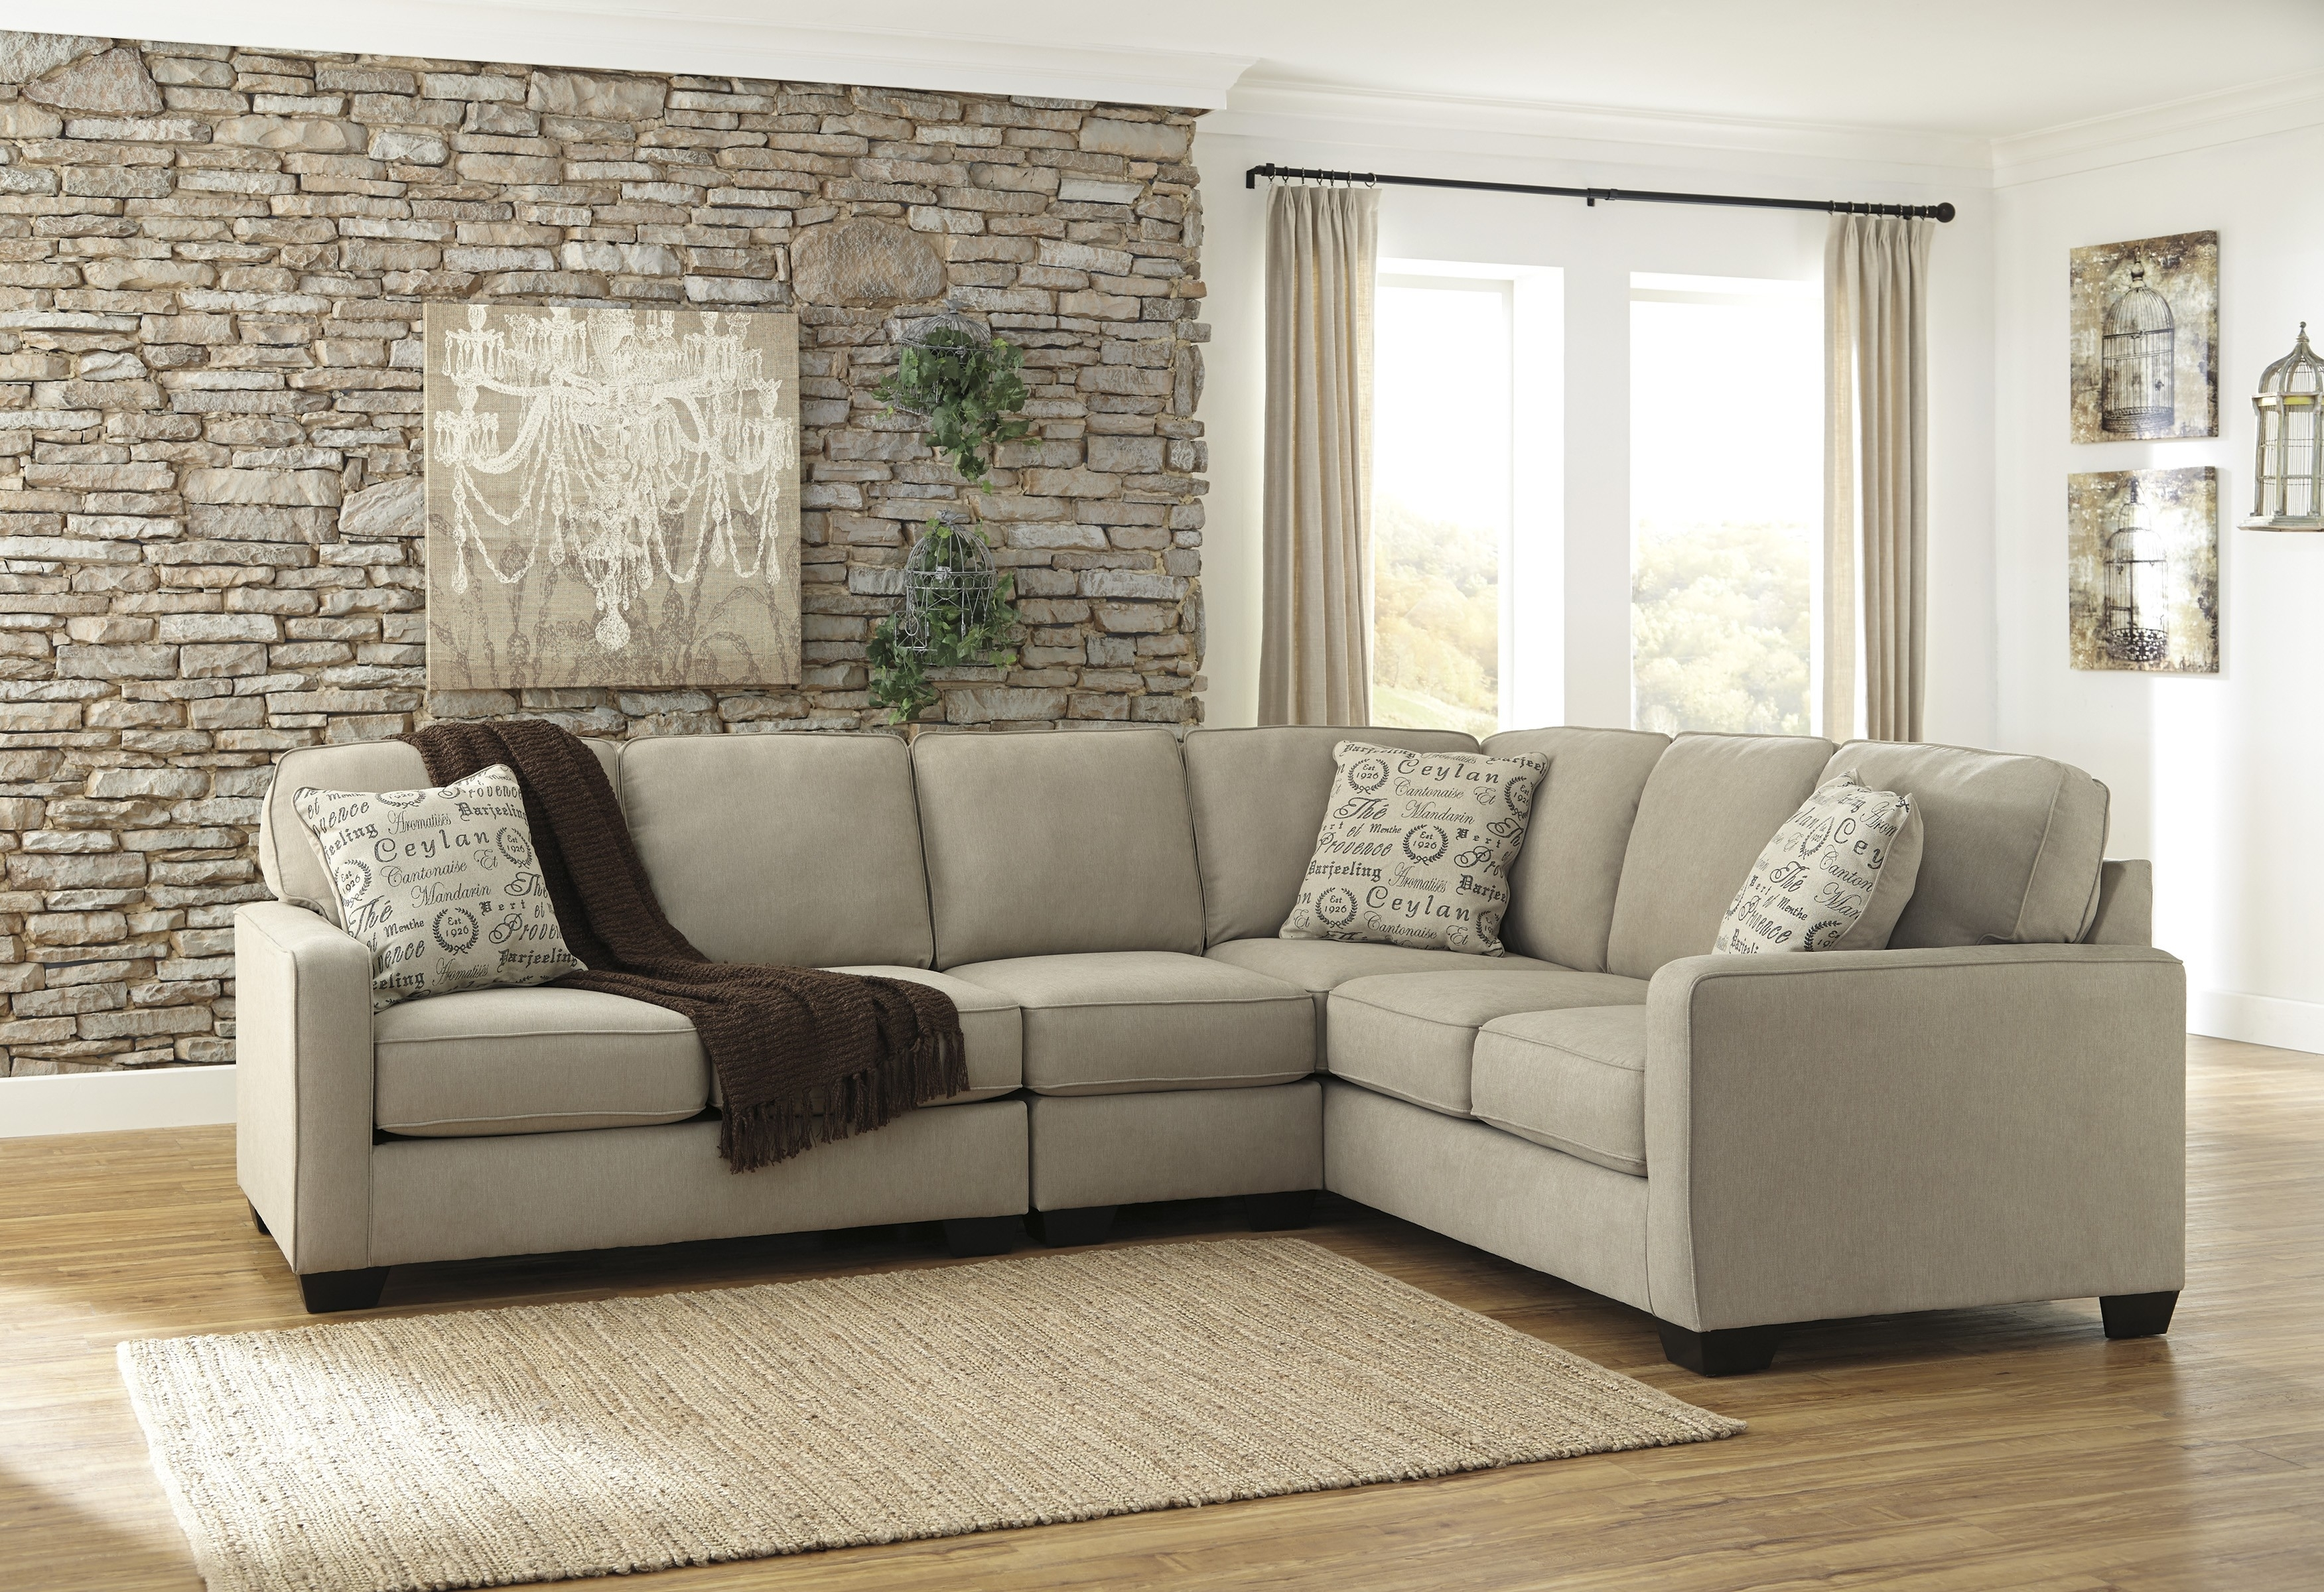 Laf Sofa Raf Loveseat | Baci Living Room For Turdur 2 Piece Sectionals With Raf Loveseat (Image 10 of 25)